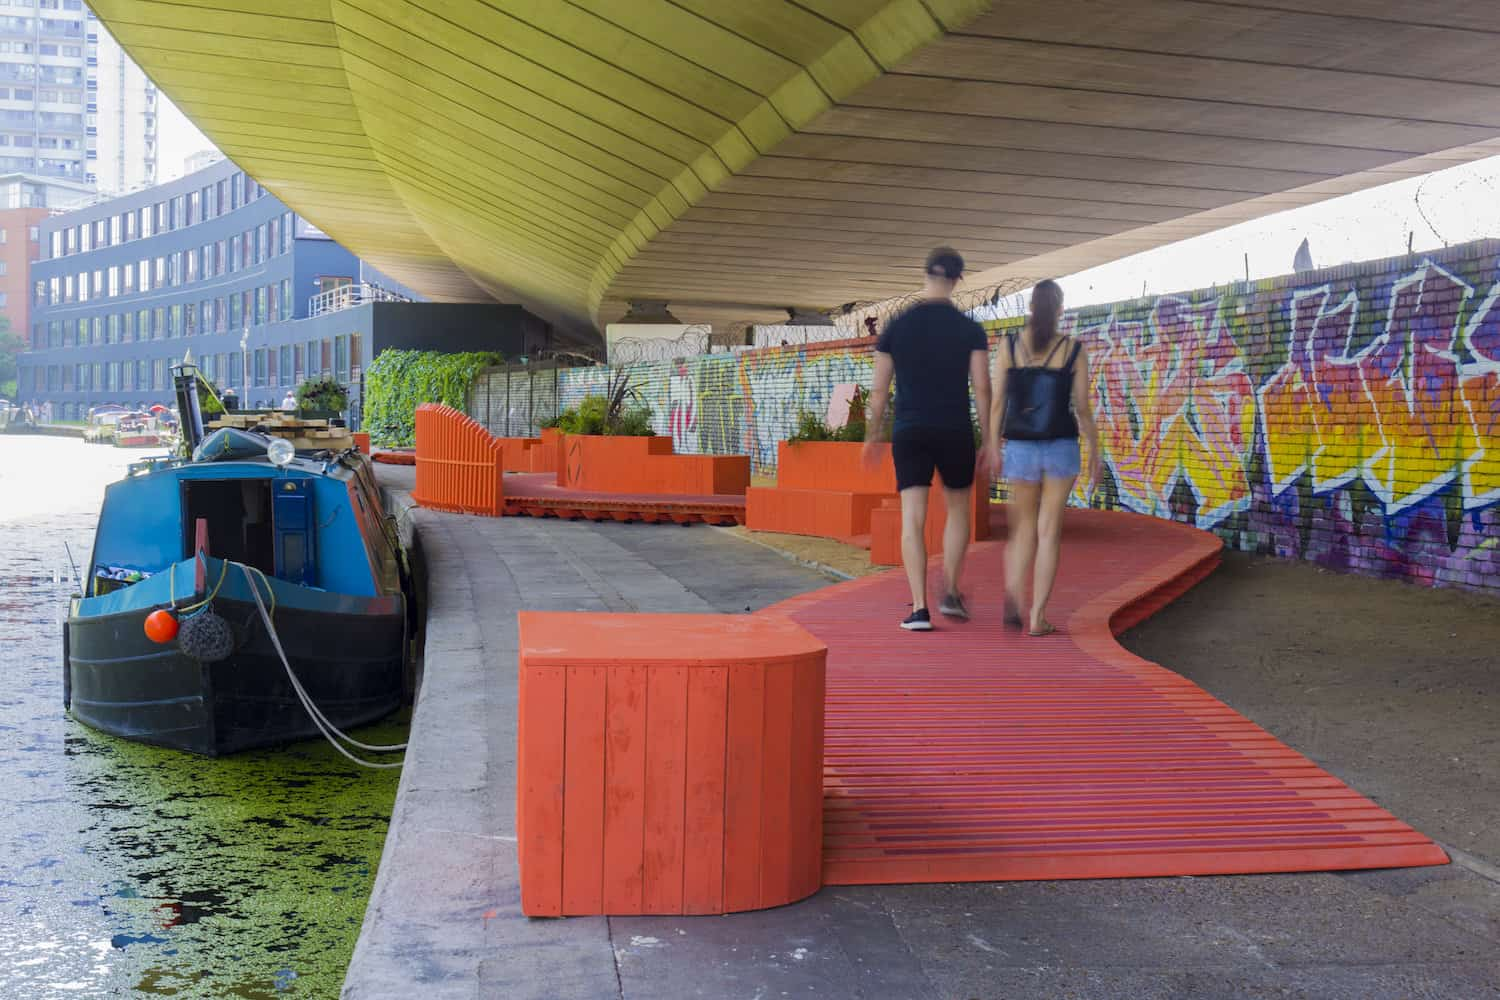 Co-Mooring brings the Grand Union Canal to life for the London Festival of Architecture